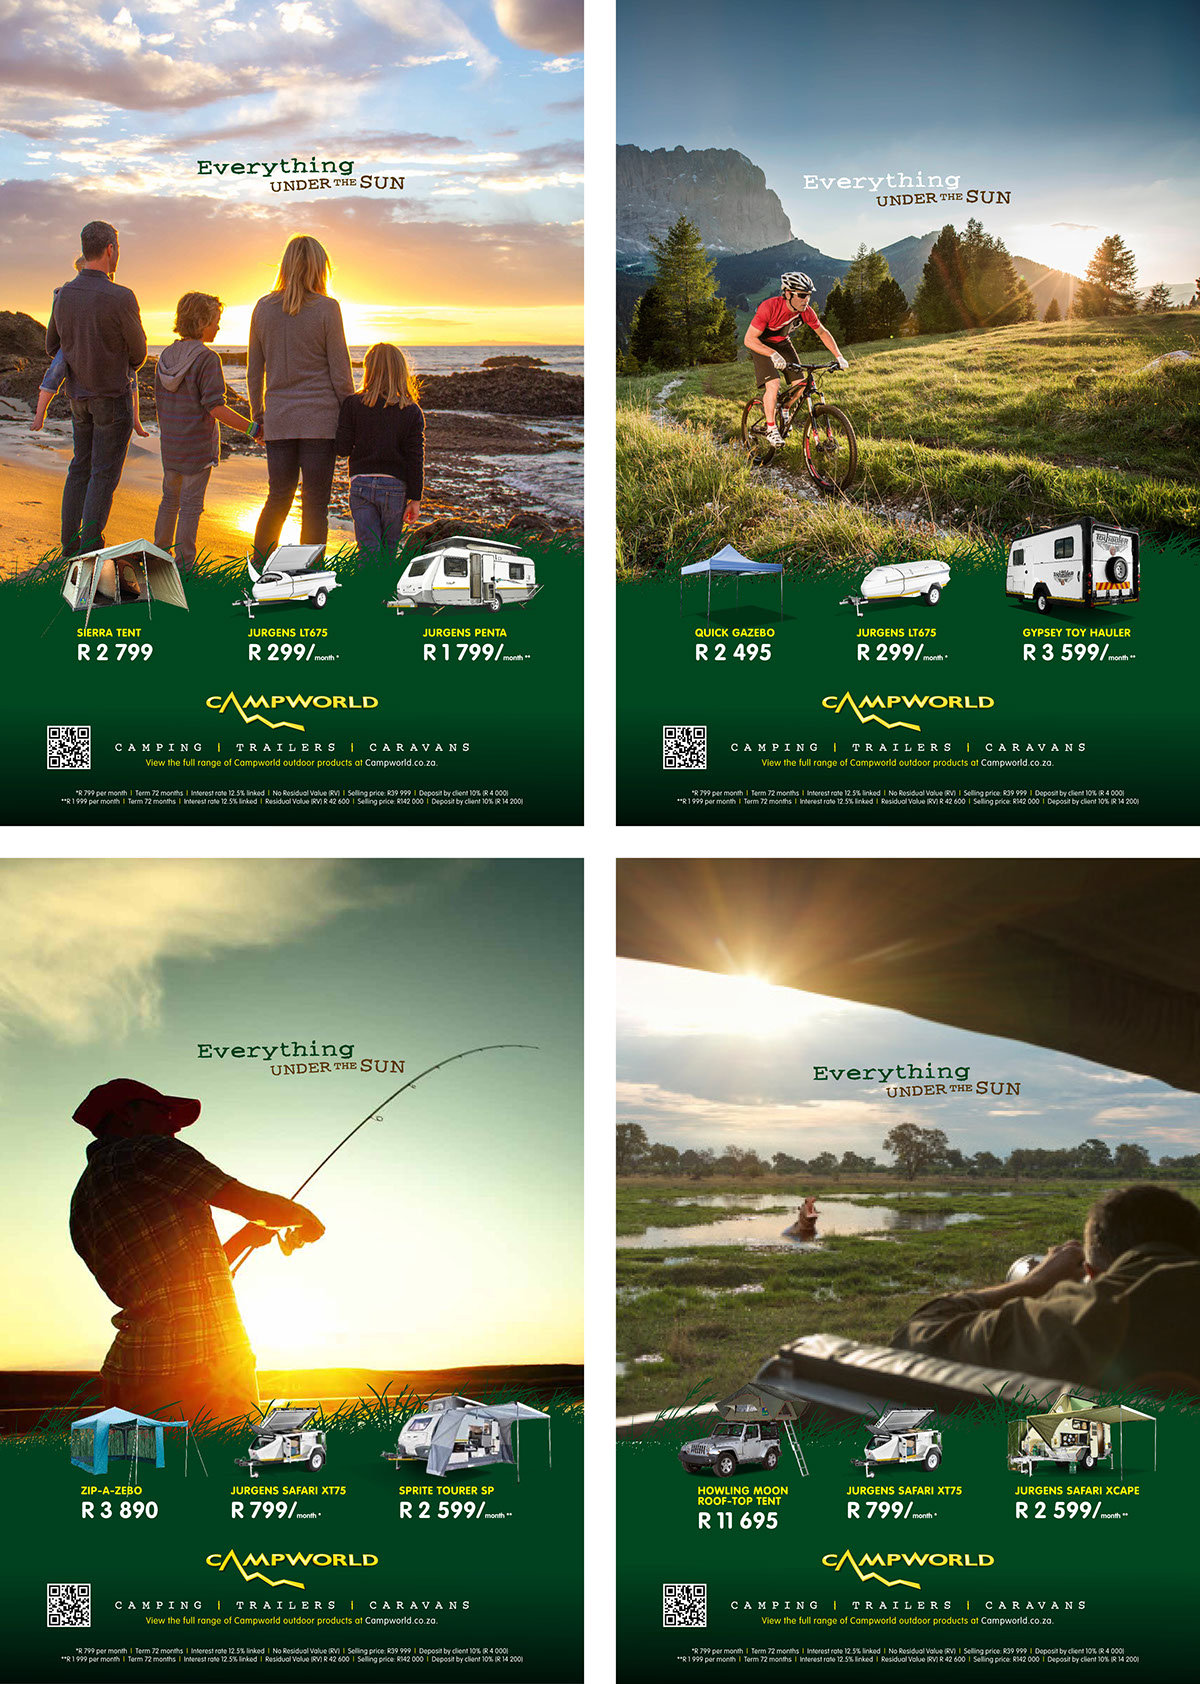 print advertisements on behance 4 of 8 full page ads for campworld campaign themes and product offerings were specific to the various publications responsible for client service